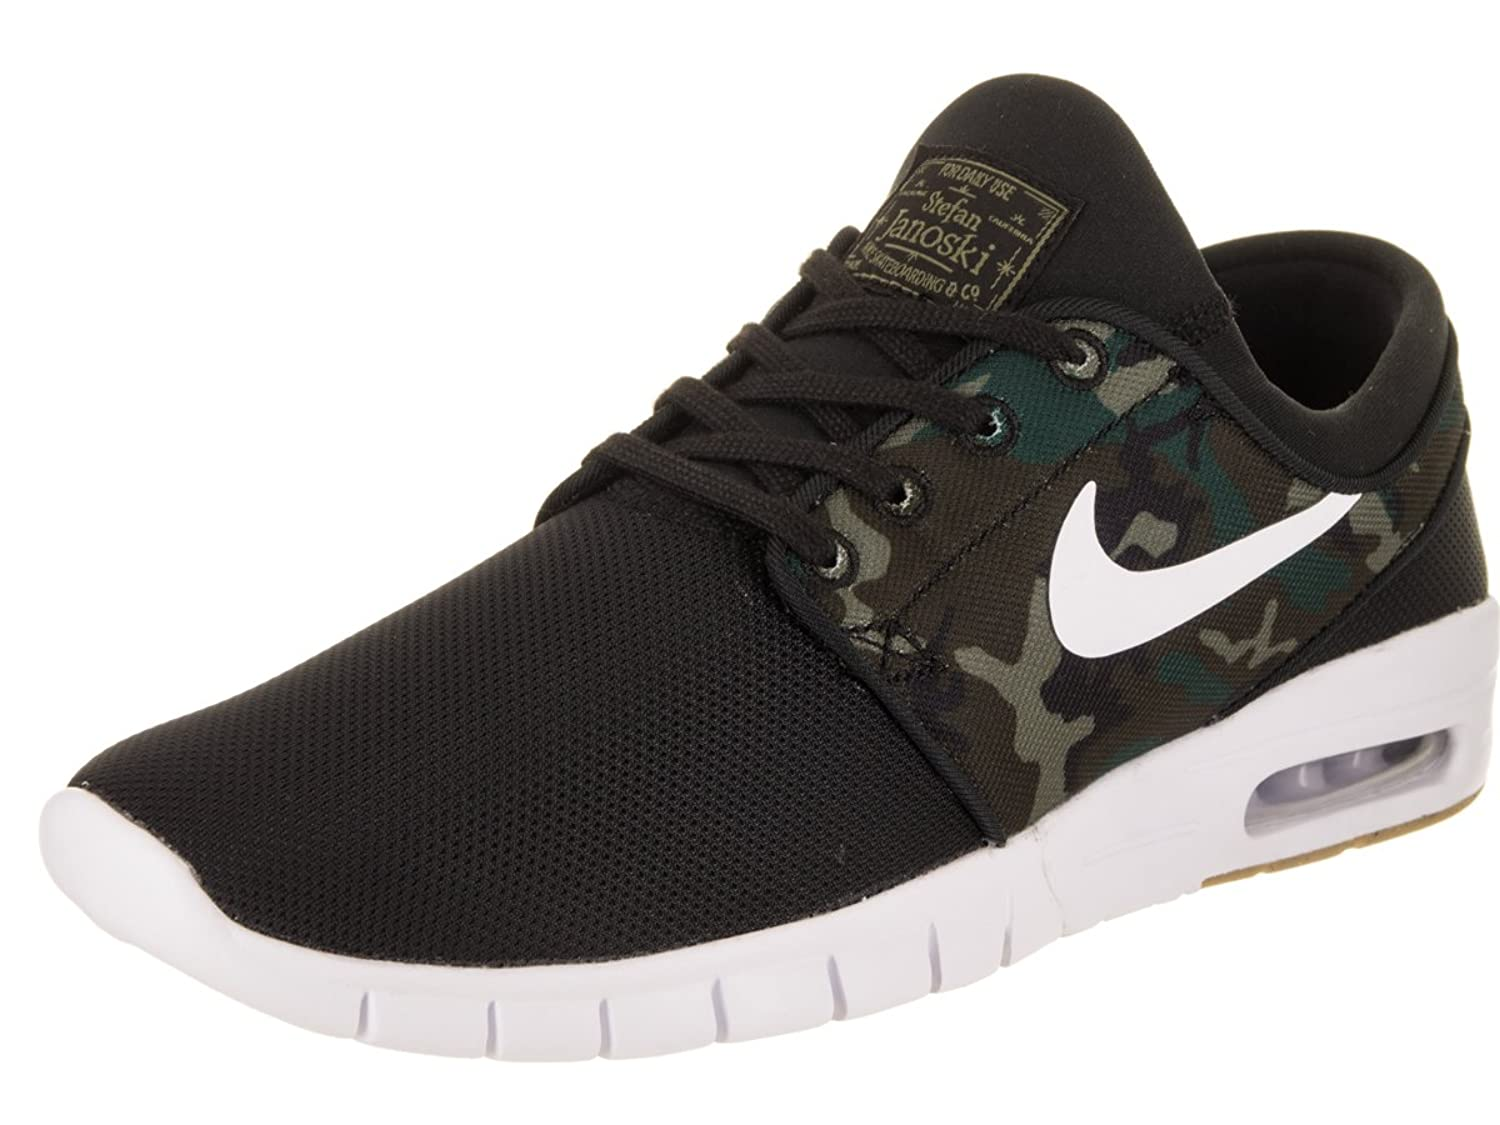 wholesale dealer 4cfaf 2445c Top13  NIKE SB Stefan Janoski Max Men s Skateboarding Shoe